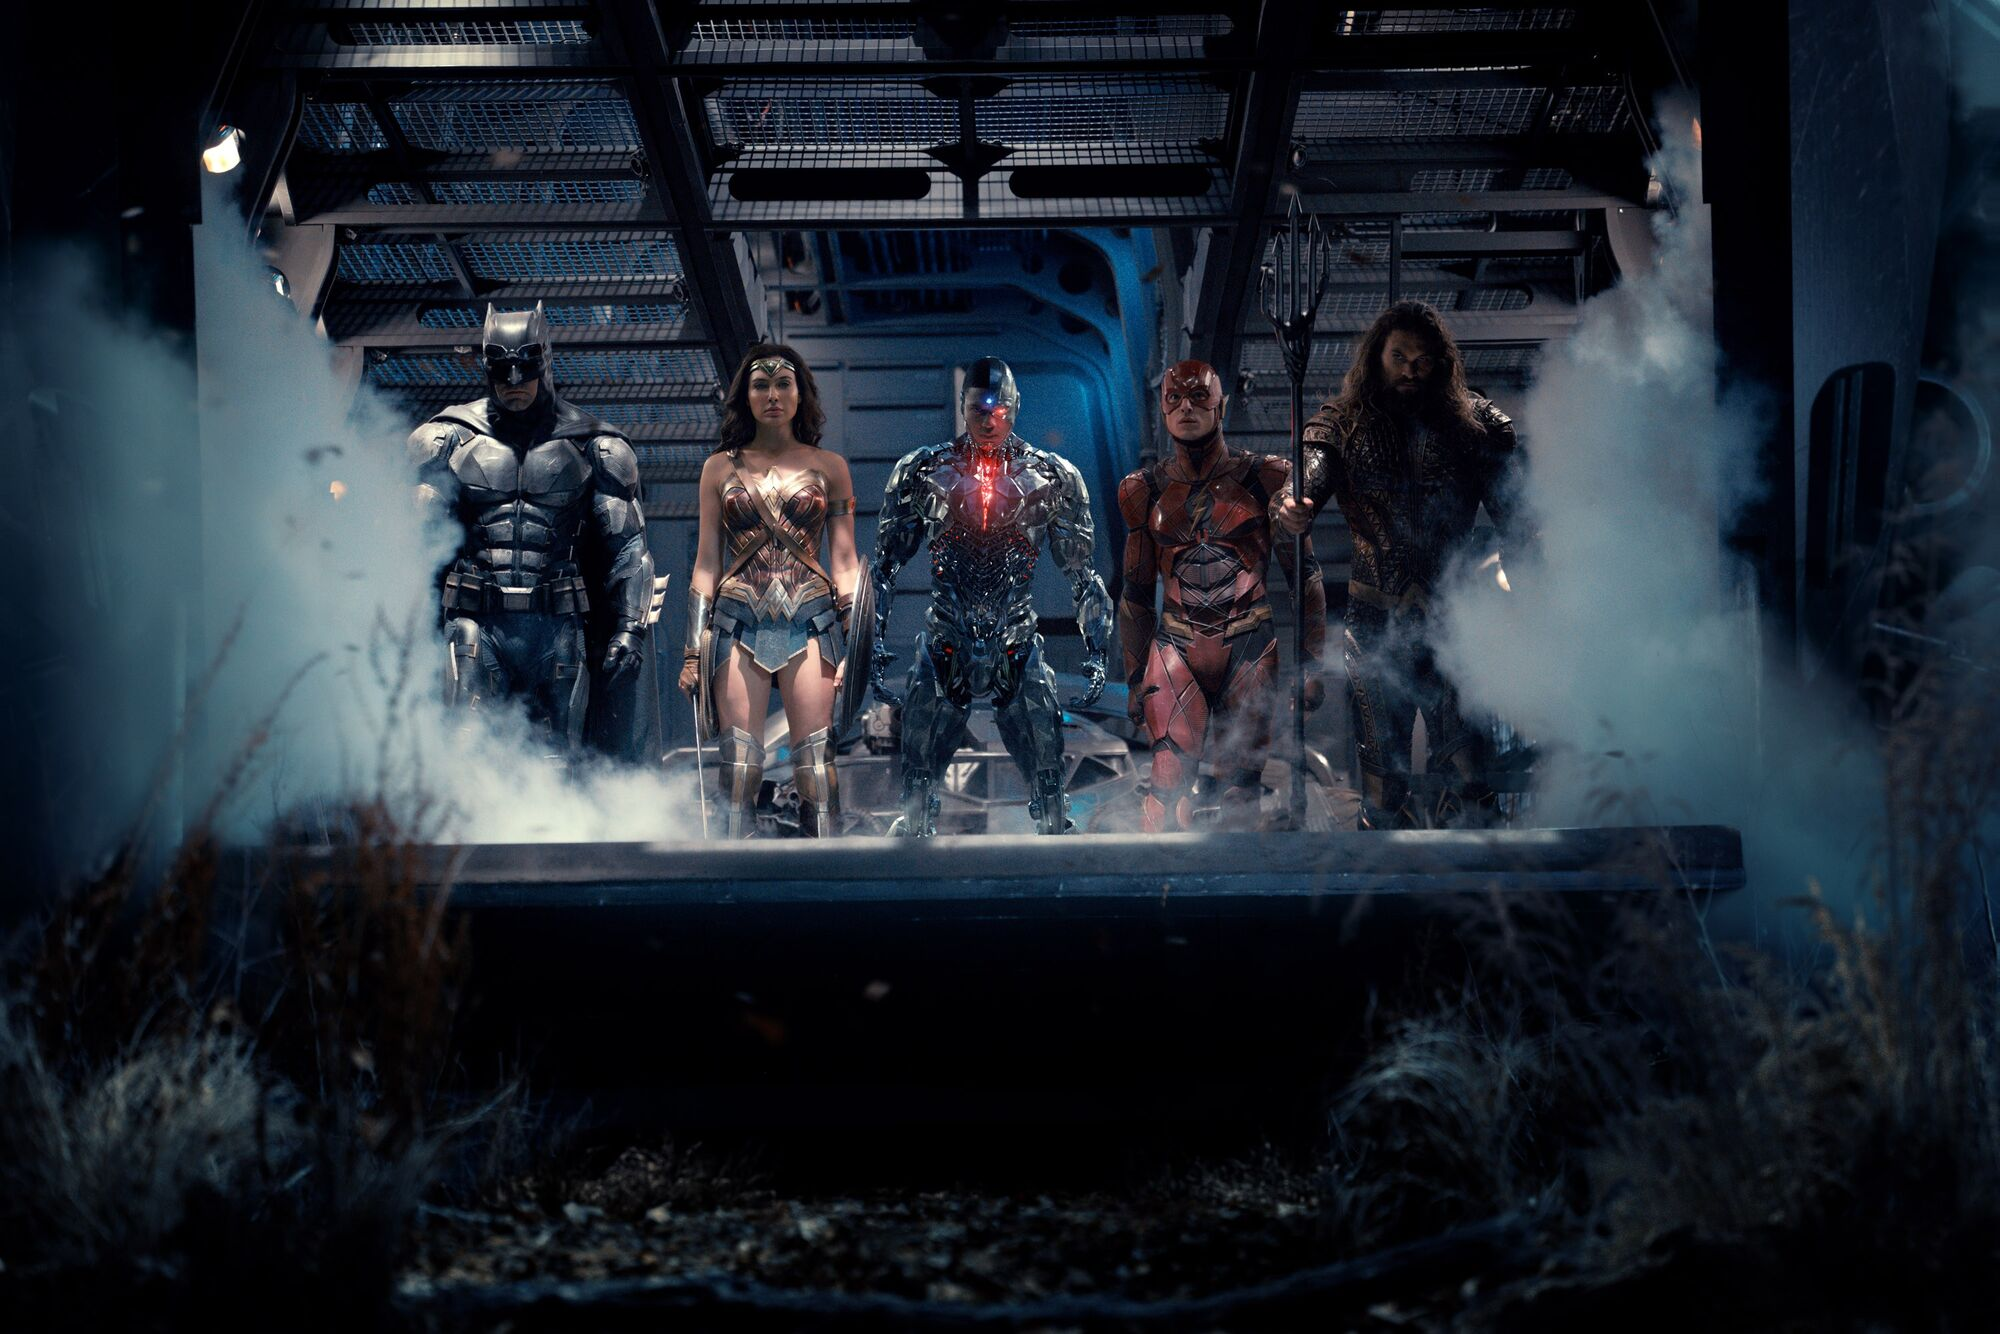 Batman vs superman dawn of justice image gallery picture 52810 - Batman Vs Superman Dawn Of Justice Image Gallery Picture 52810 Batman Vs Superman Dawn Of